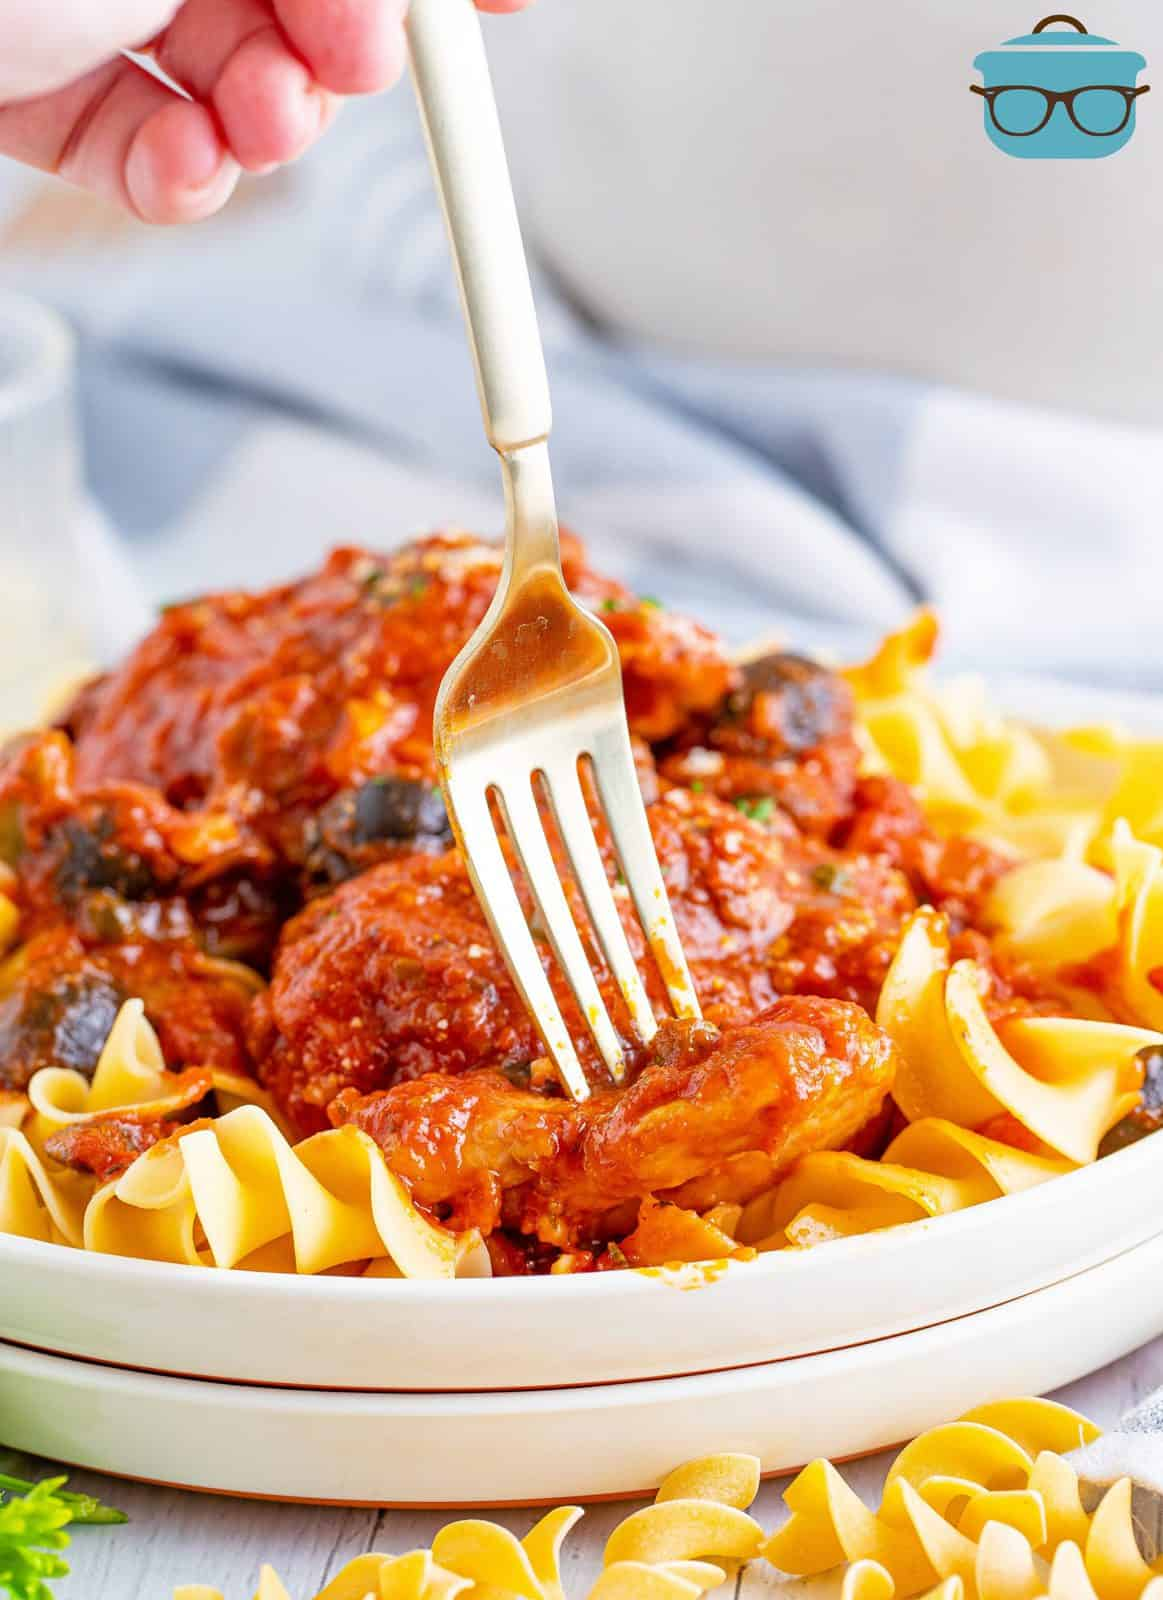 Fork going into piece of Chicken Cacciatore on plate over noodles.